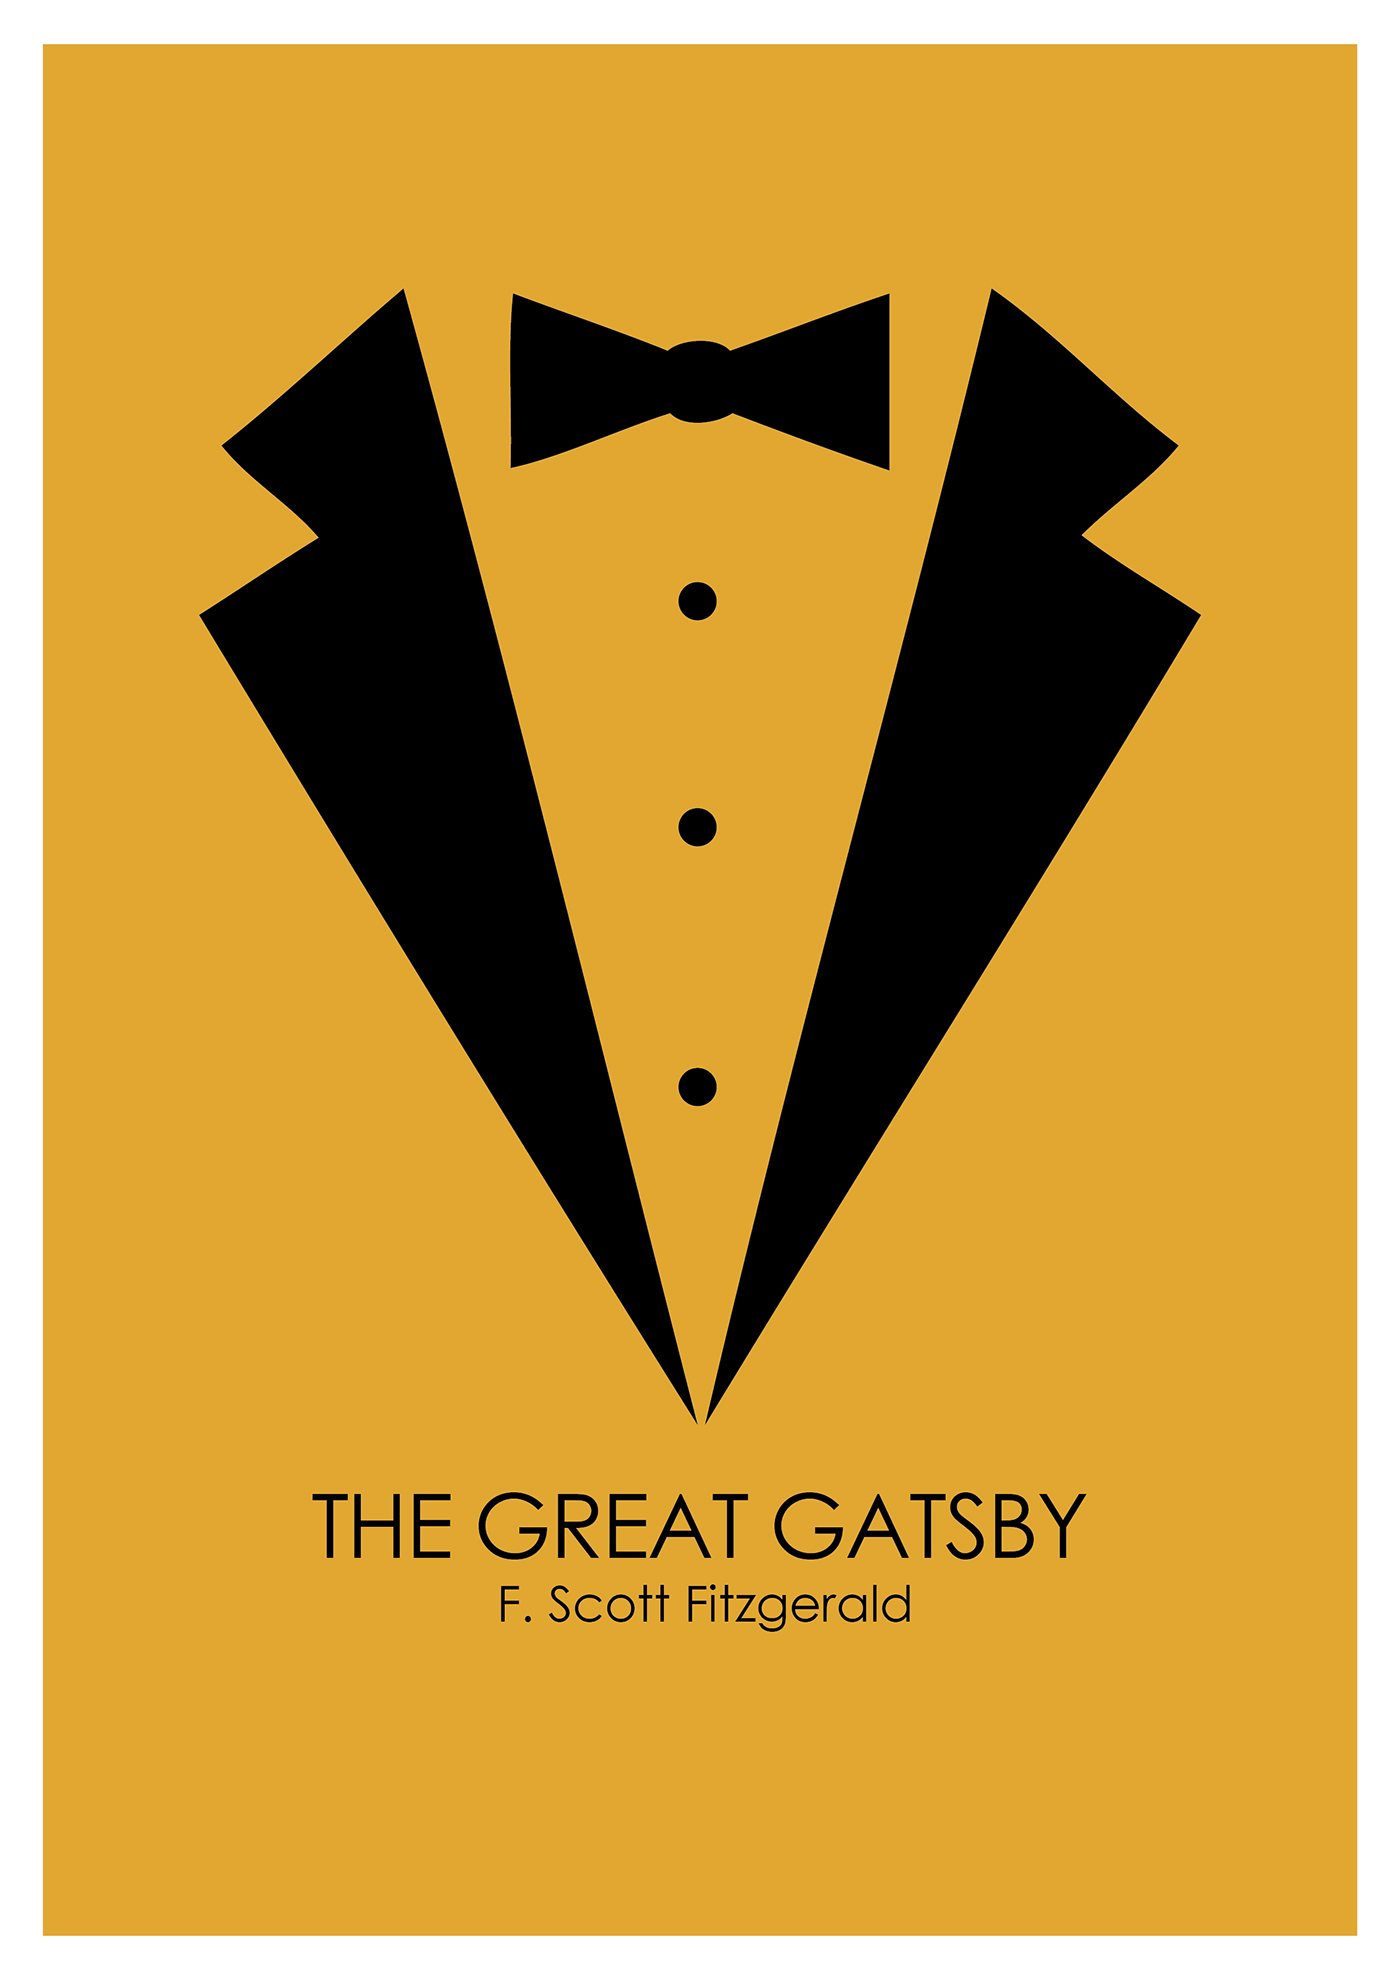 Book Cover Layout Bangalore : Great gatsby book cover design on behance